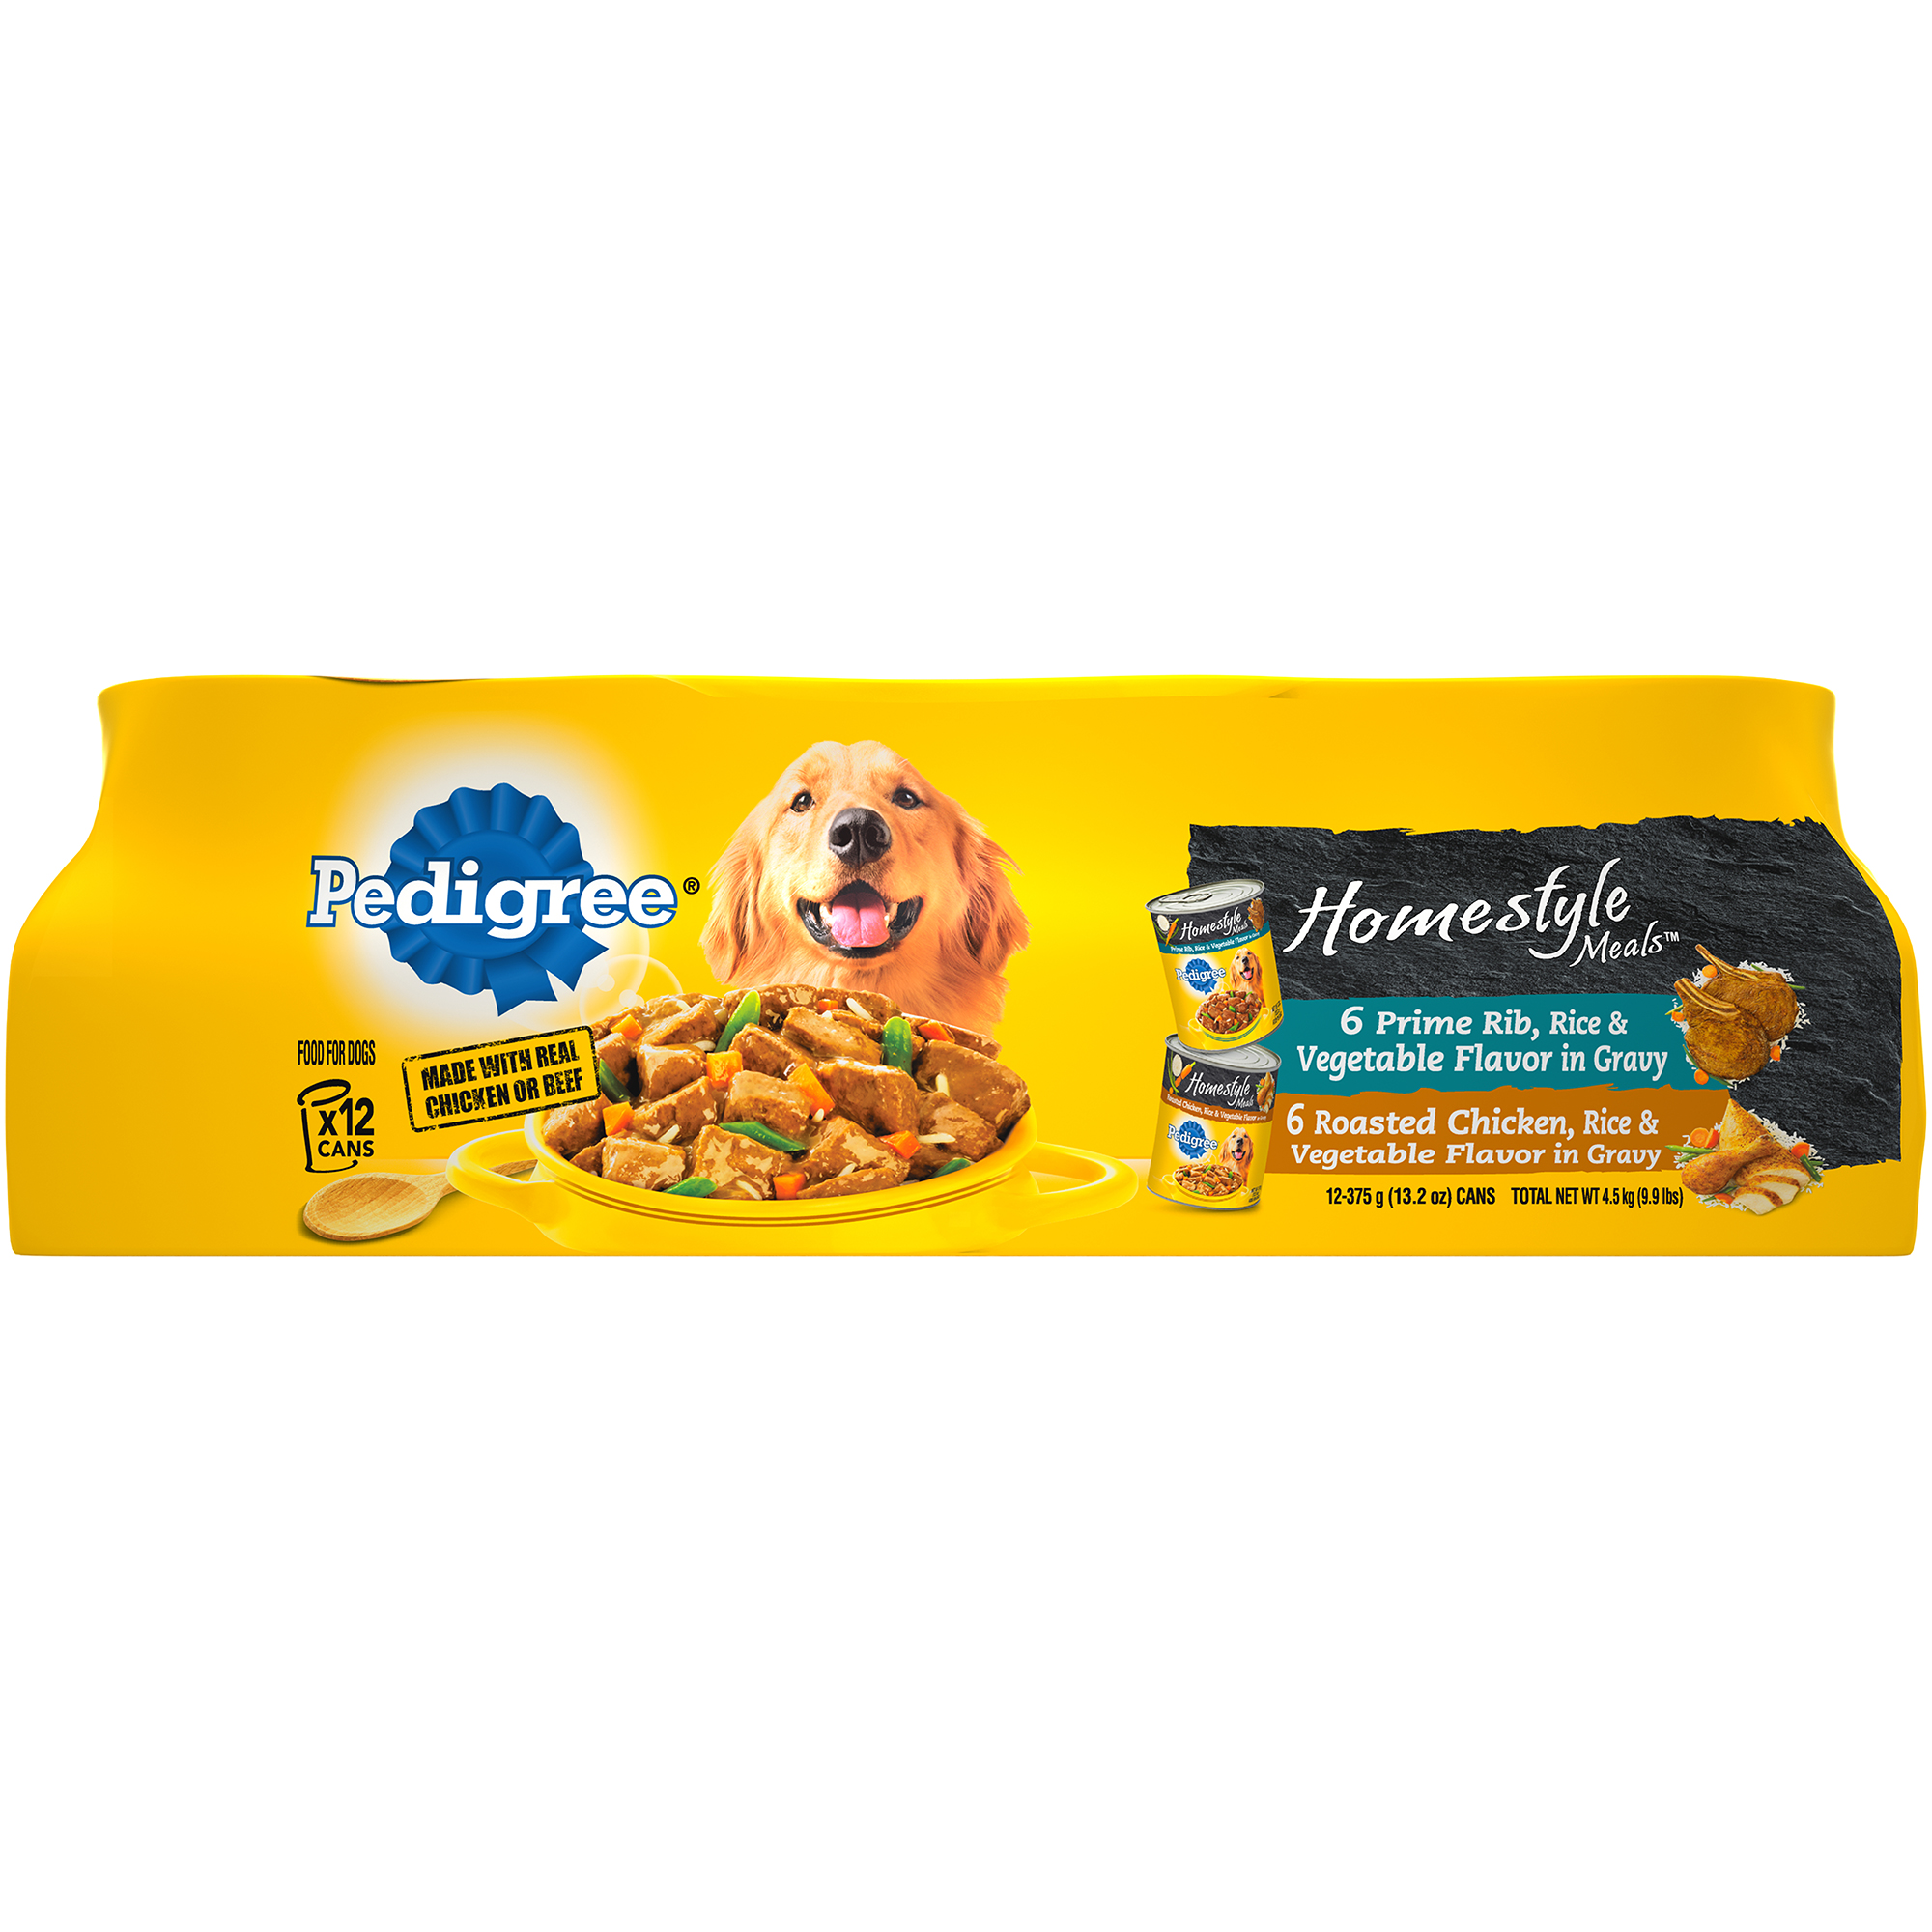 PEDIGREE Homestyle Meals Adult Canned Wet Dog Food Variety Pack, (12) 13.2 oz. Cans